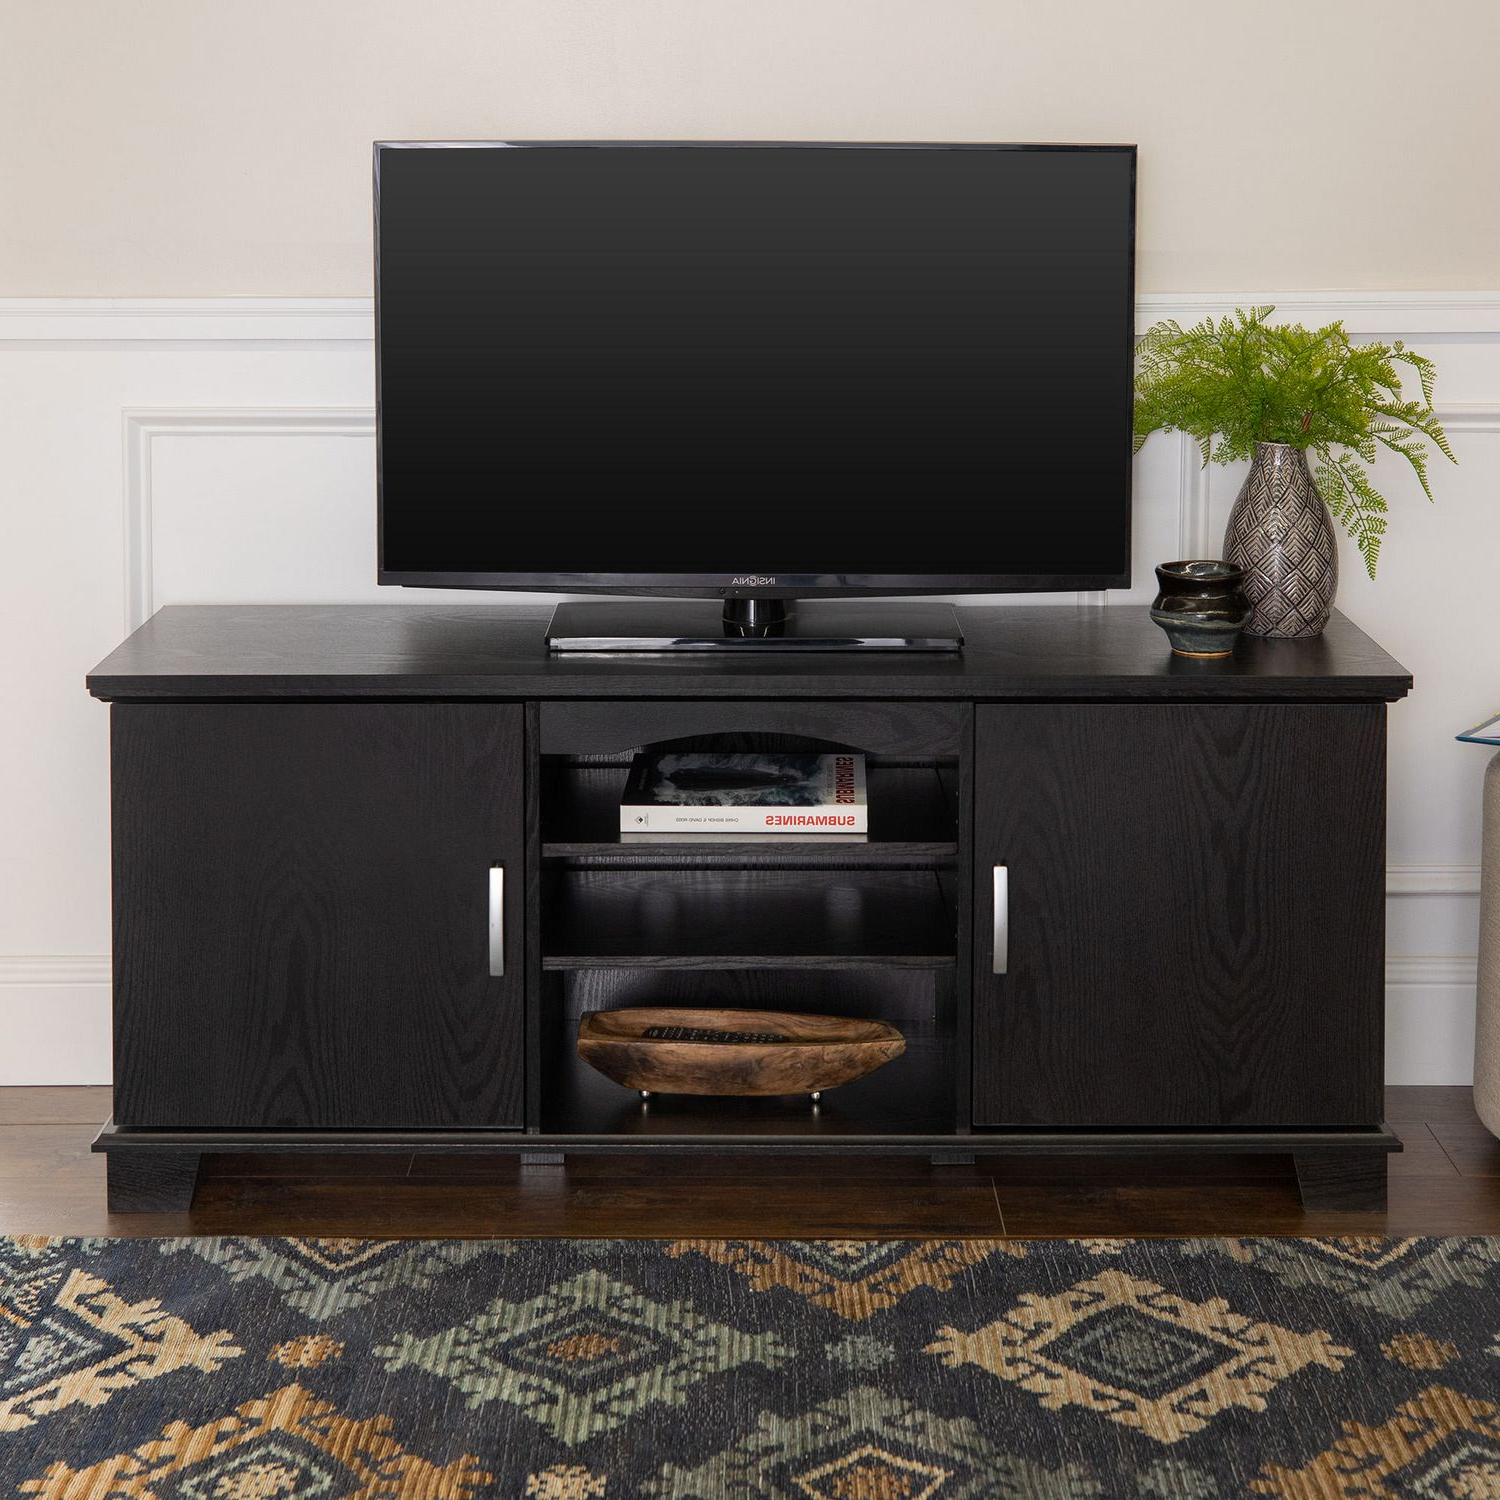 Manor Park Traditional Tv Stand With Storage For Tv's Up With Regard To Edgeware Black Tv Stands (View 1 of 20)